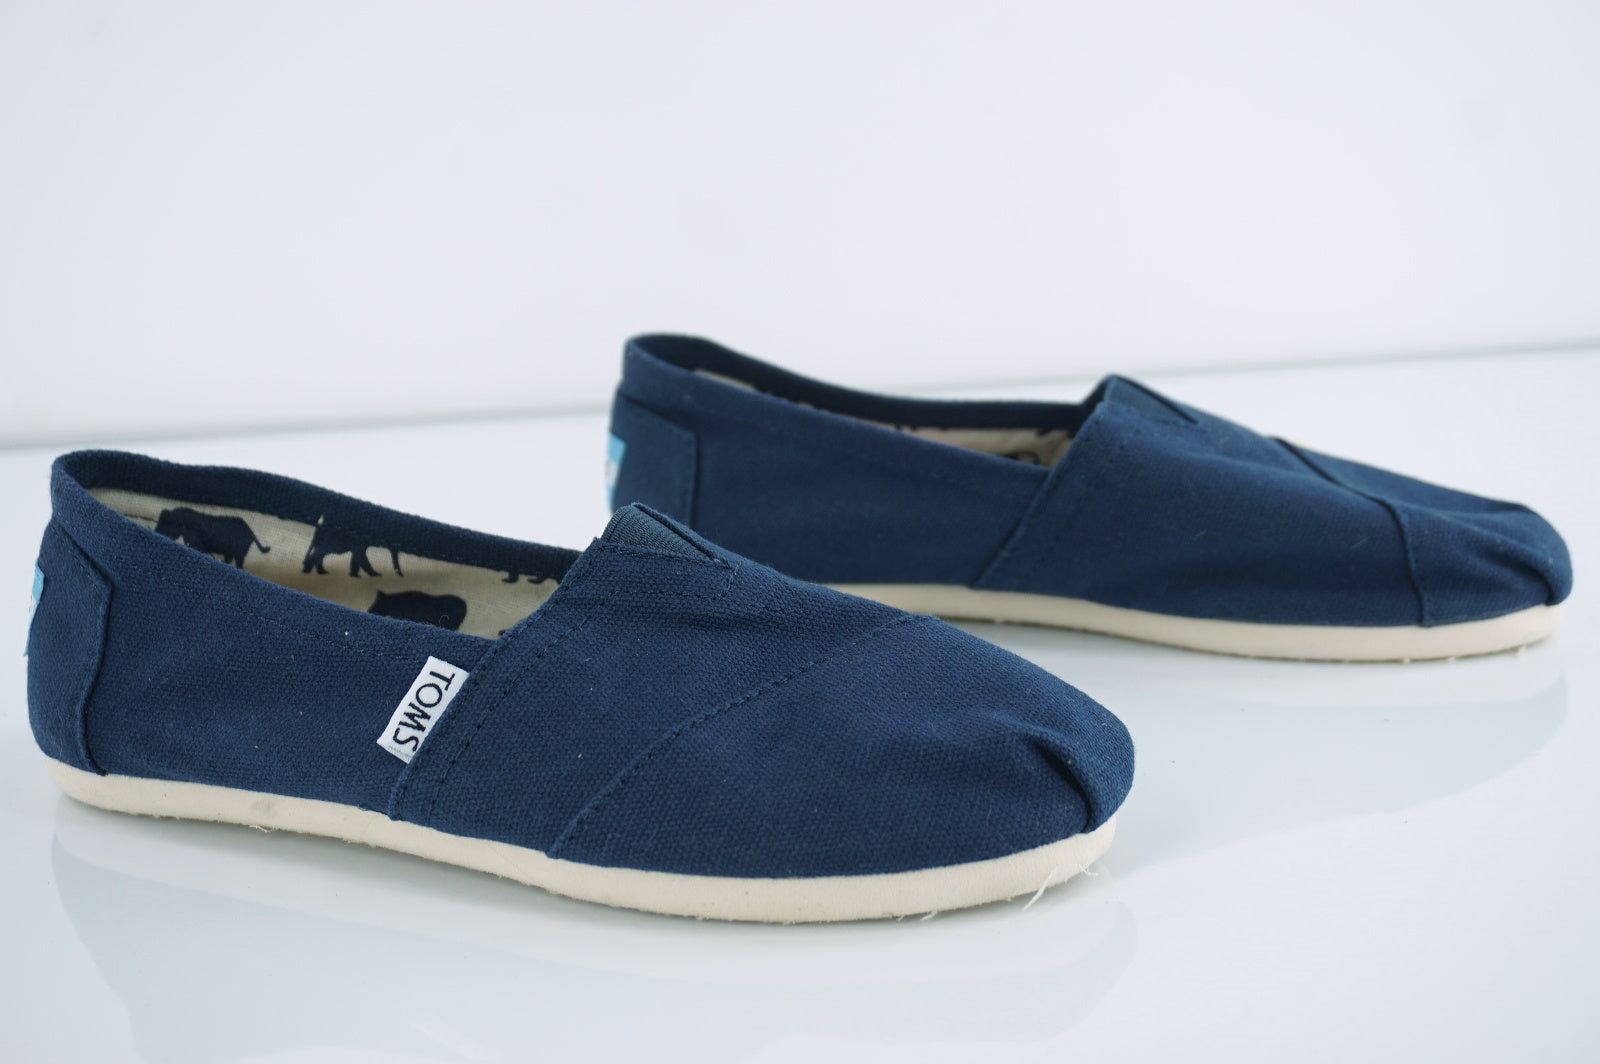 Toms Classic Canvas Womens Shoes Slip On Navy Blue Size 6 New